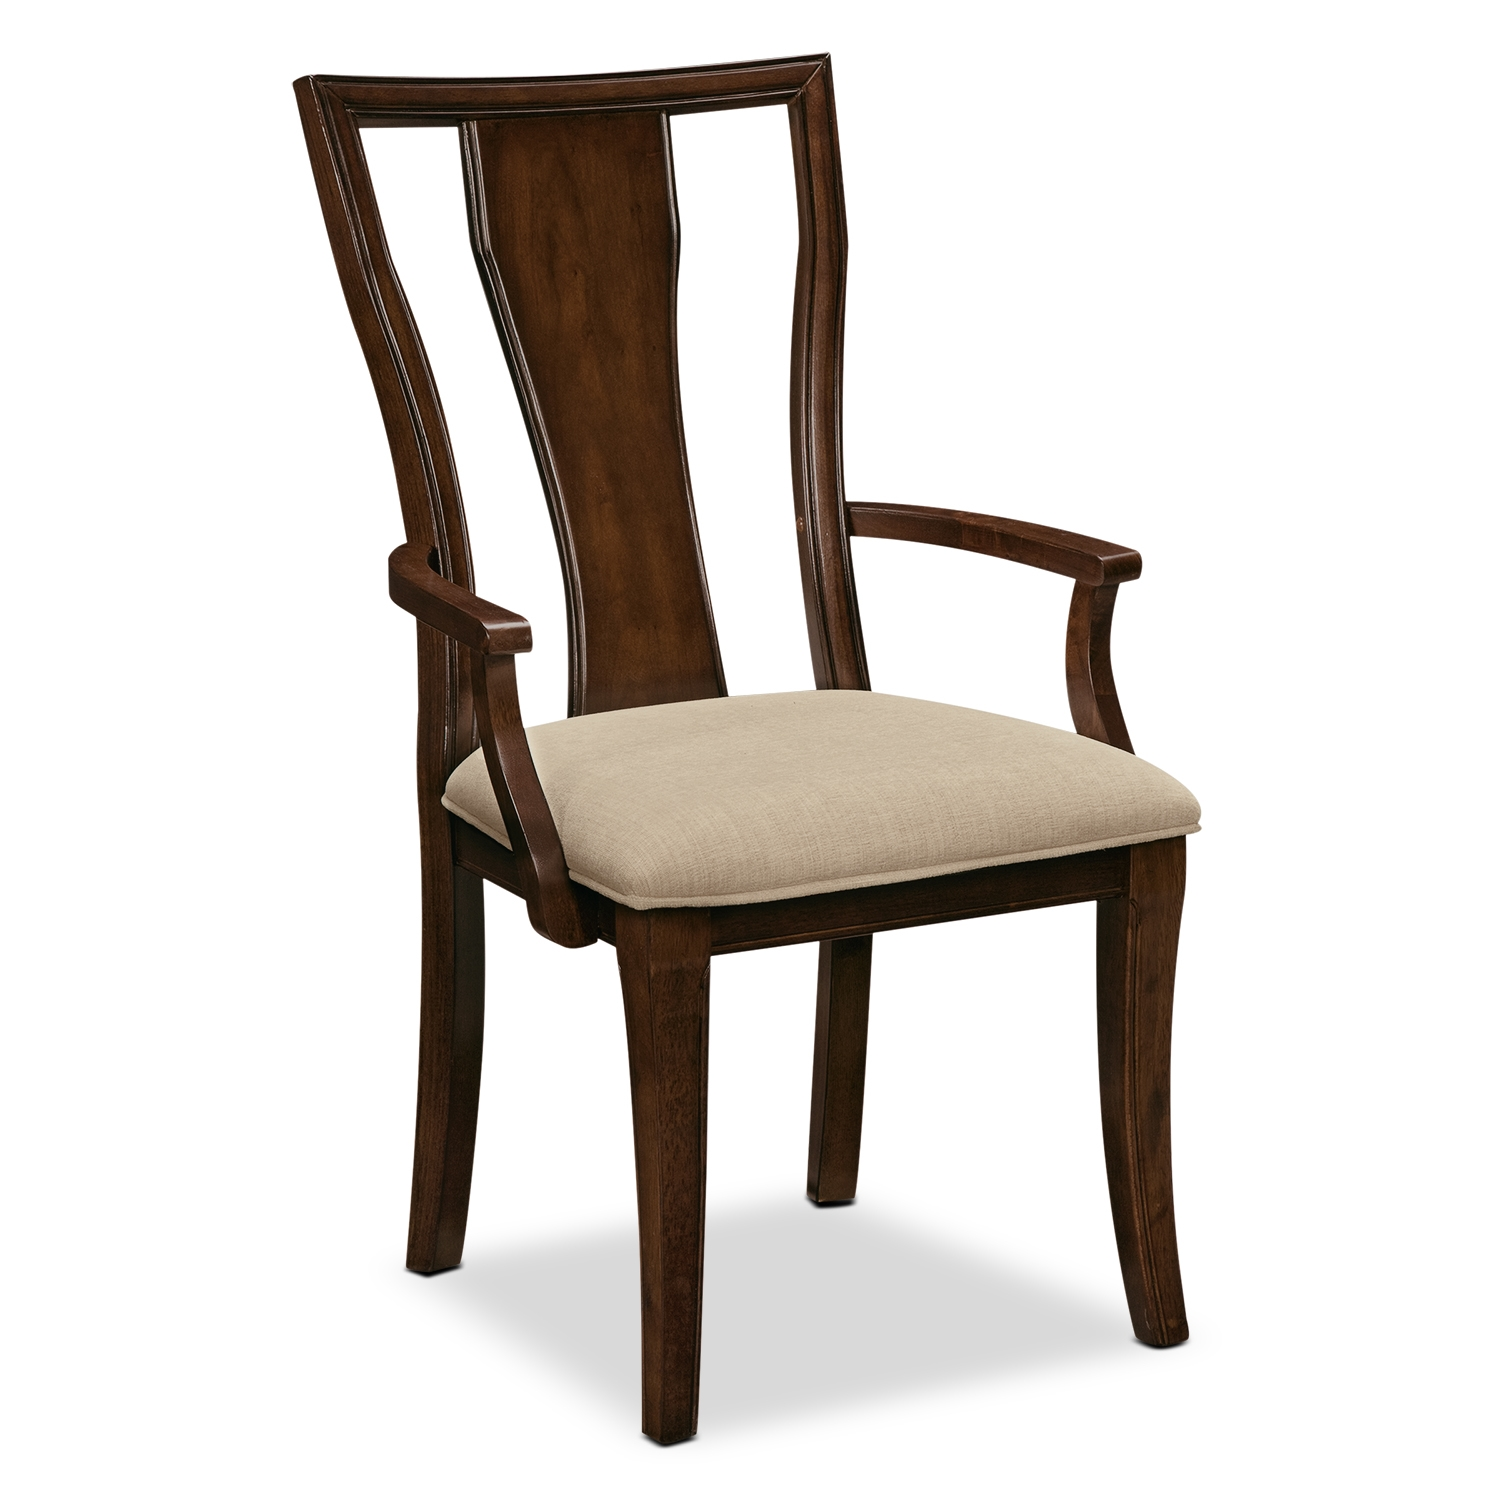 Dining Room Chairs Arms Sale Upholstered Light Oak – HOMIFIND